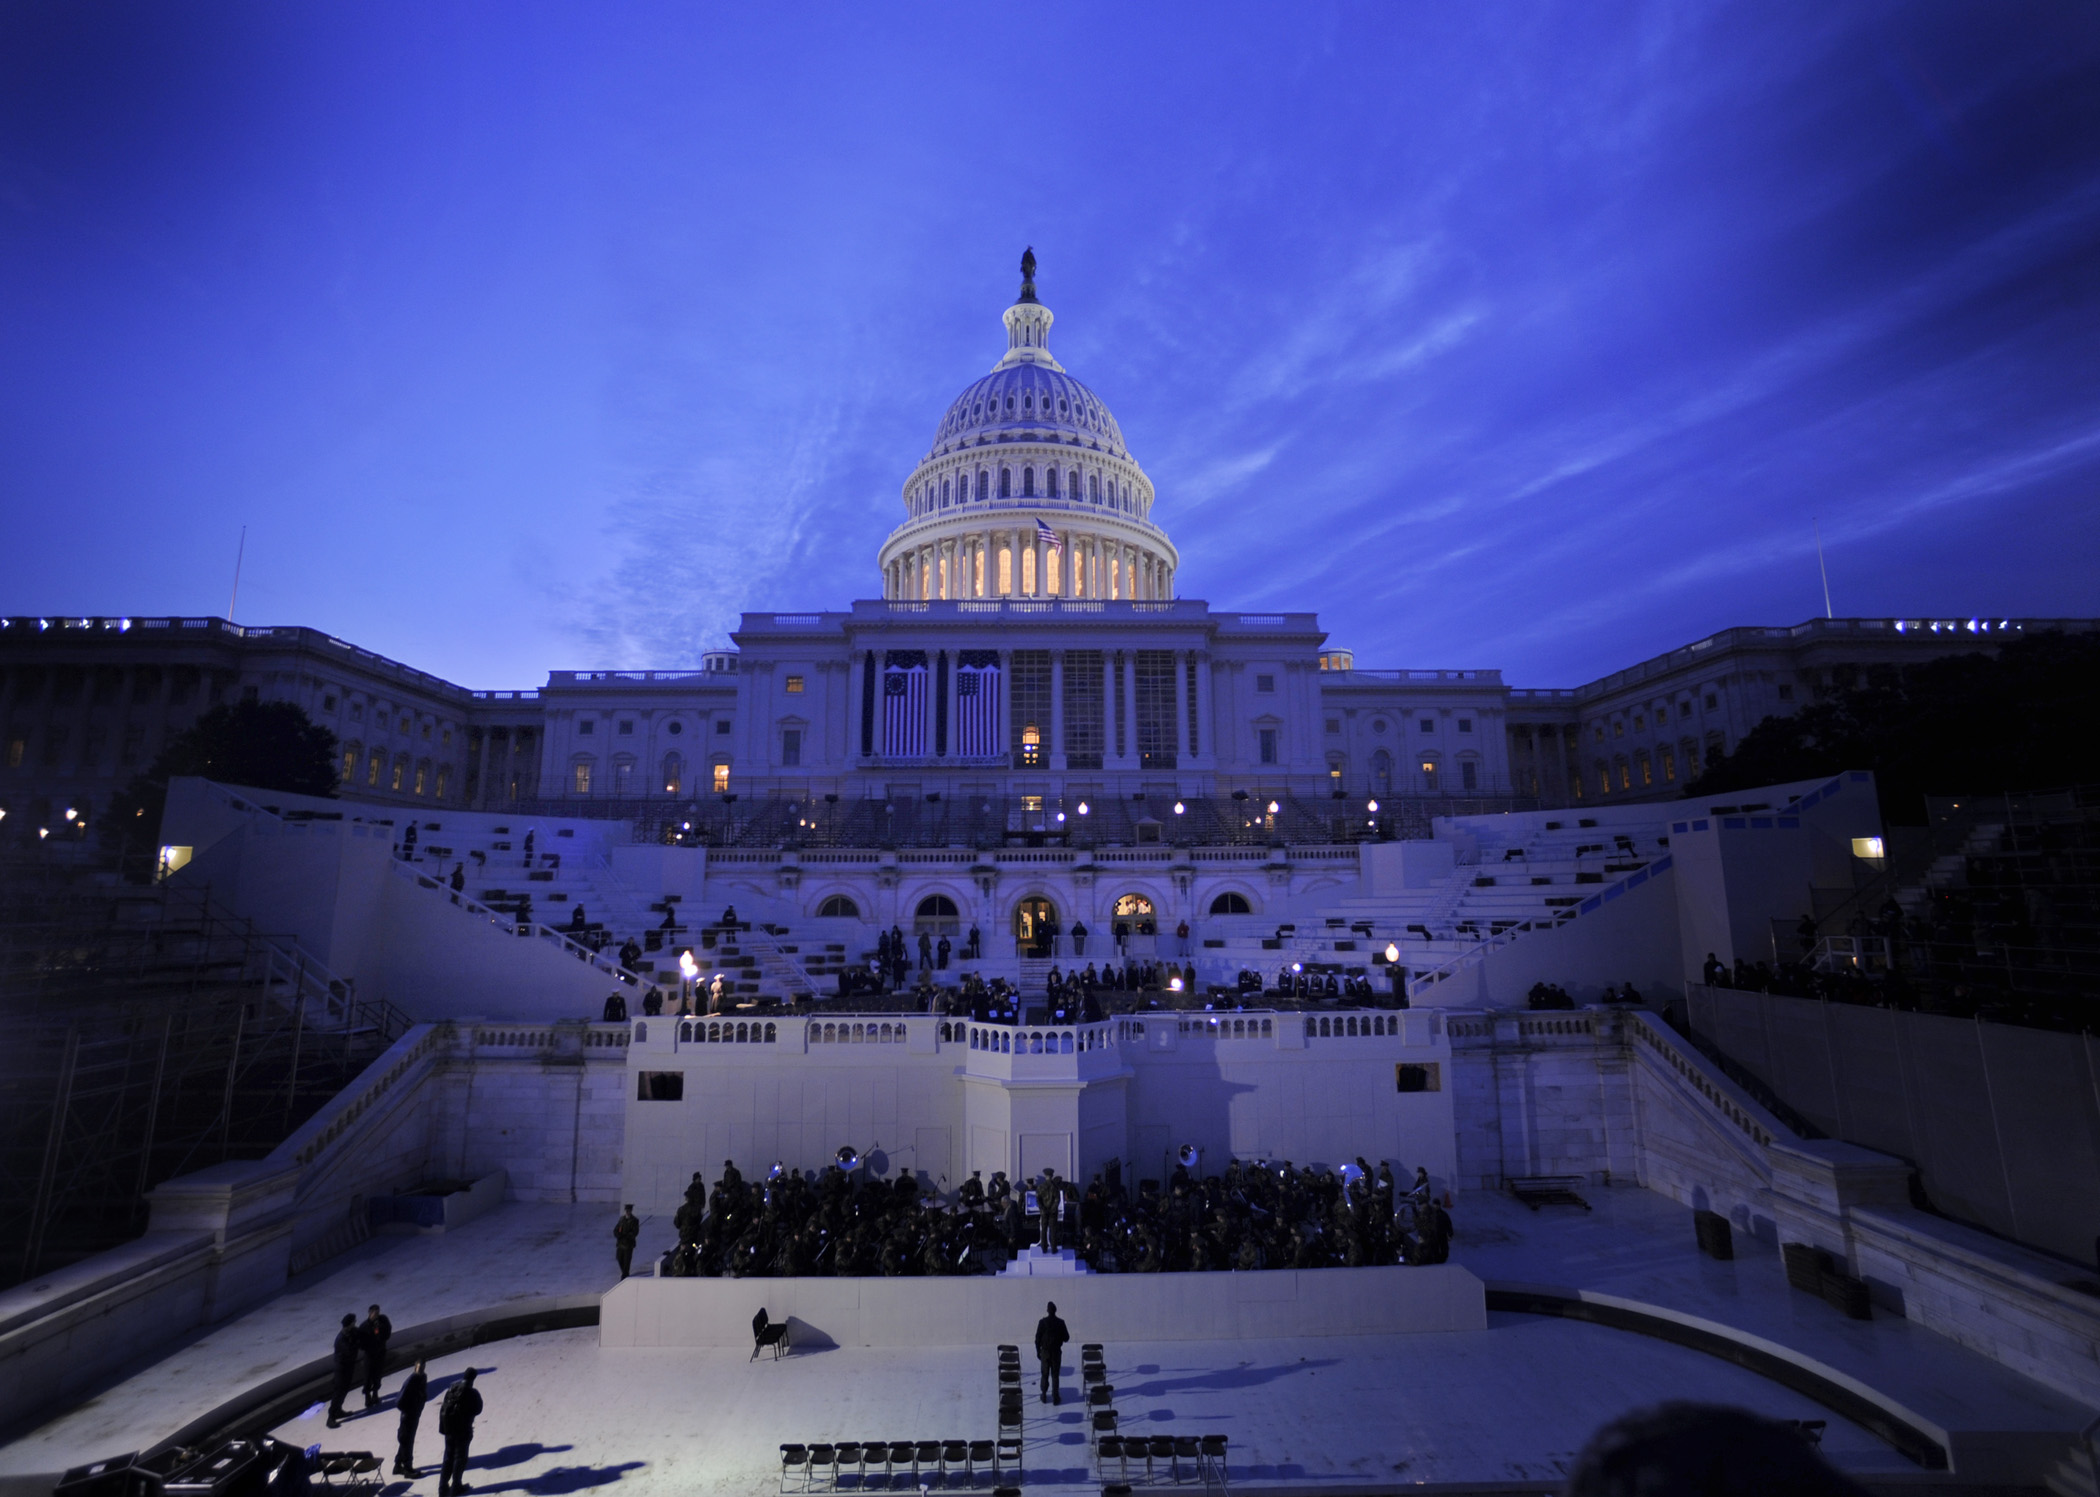 U.S. Capitol at dusk, mostly darkened but with dome floodlit from within